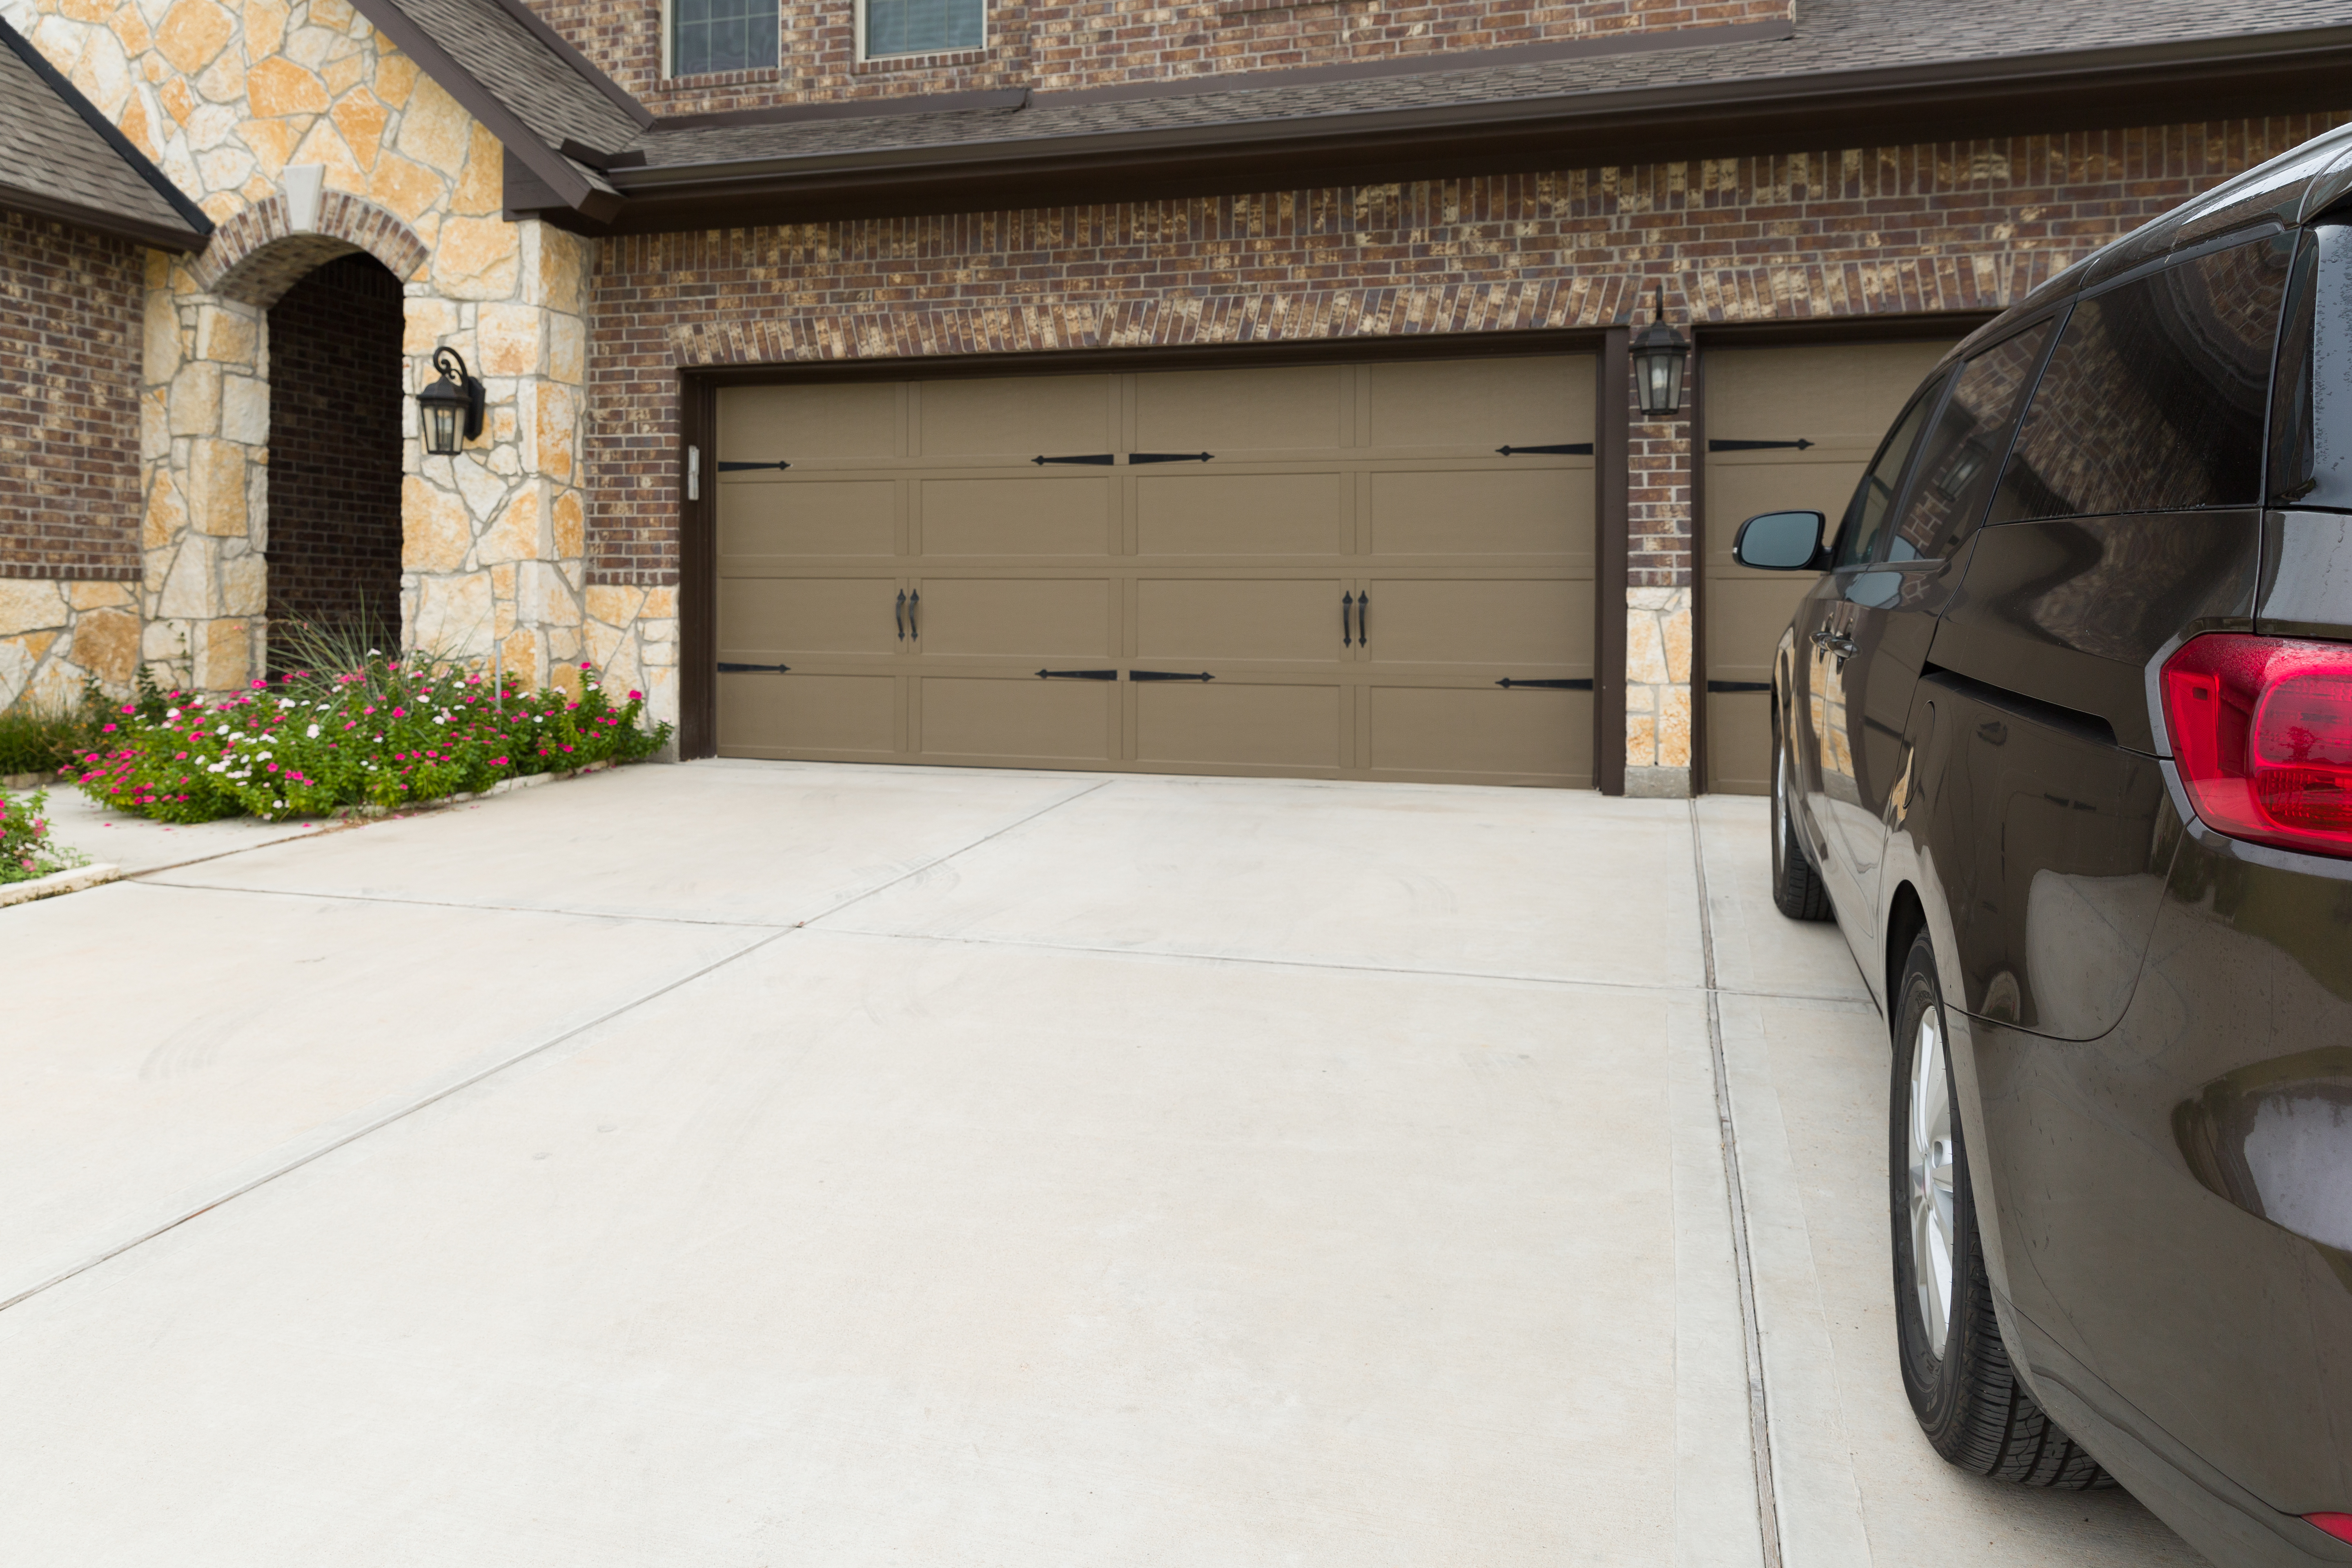 Will garages become out-dated?